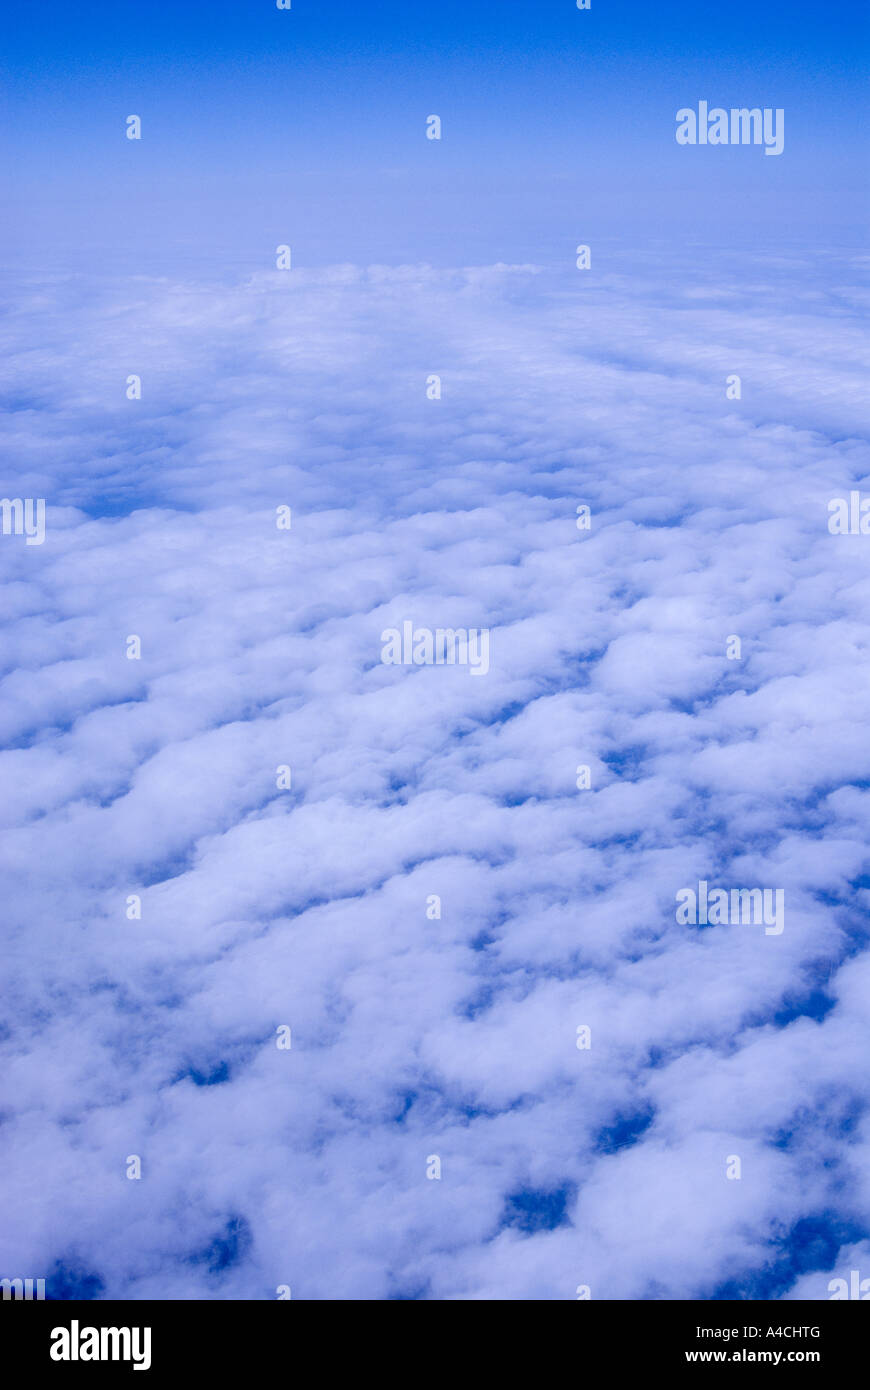 Clouds photographed from a jetliner. - Stock Image